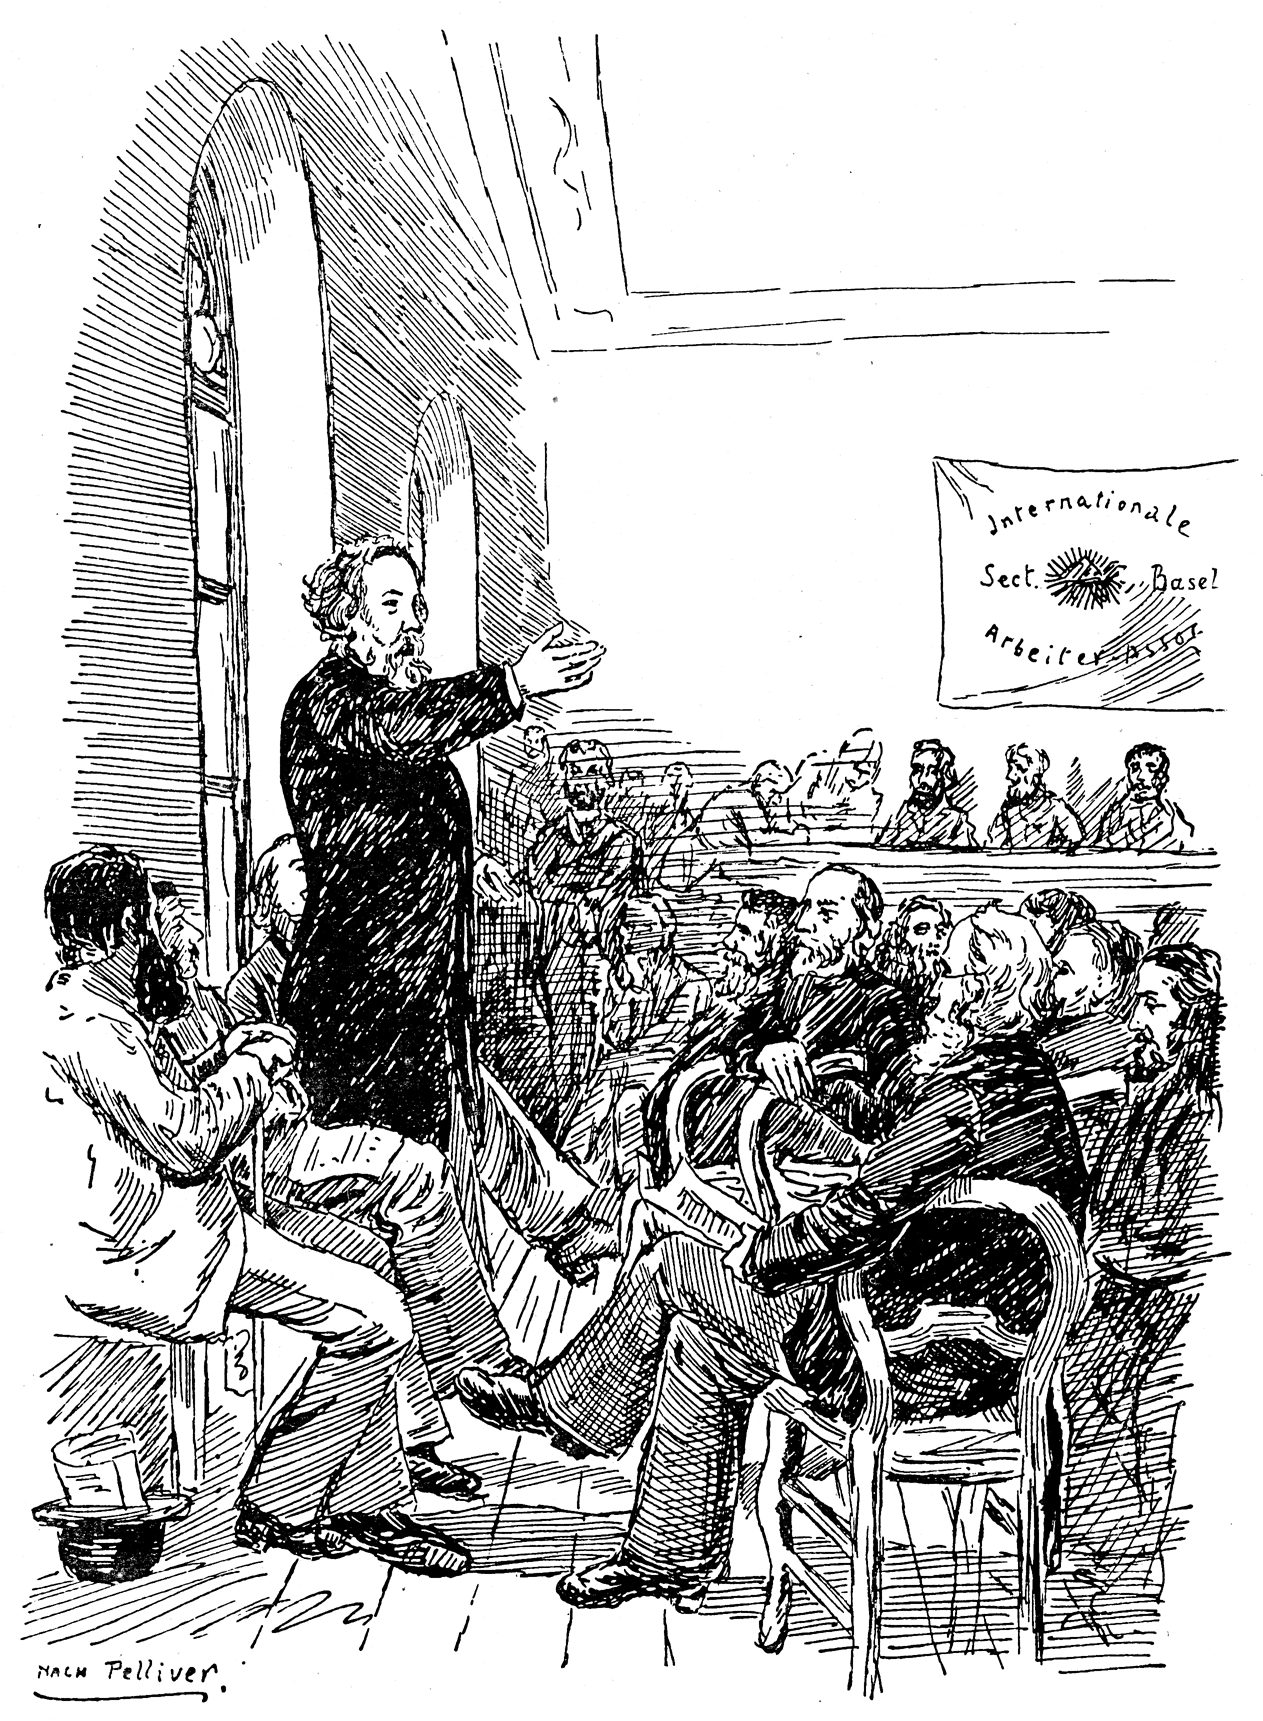 Mikhail Bakunin speaking to members of the IWA at the Basel Congress in 1869